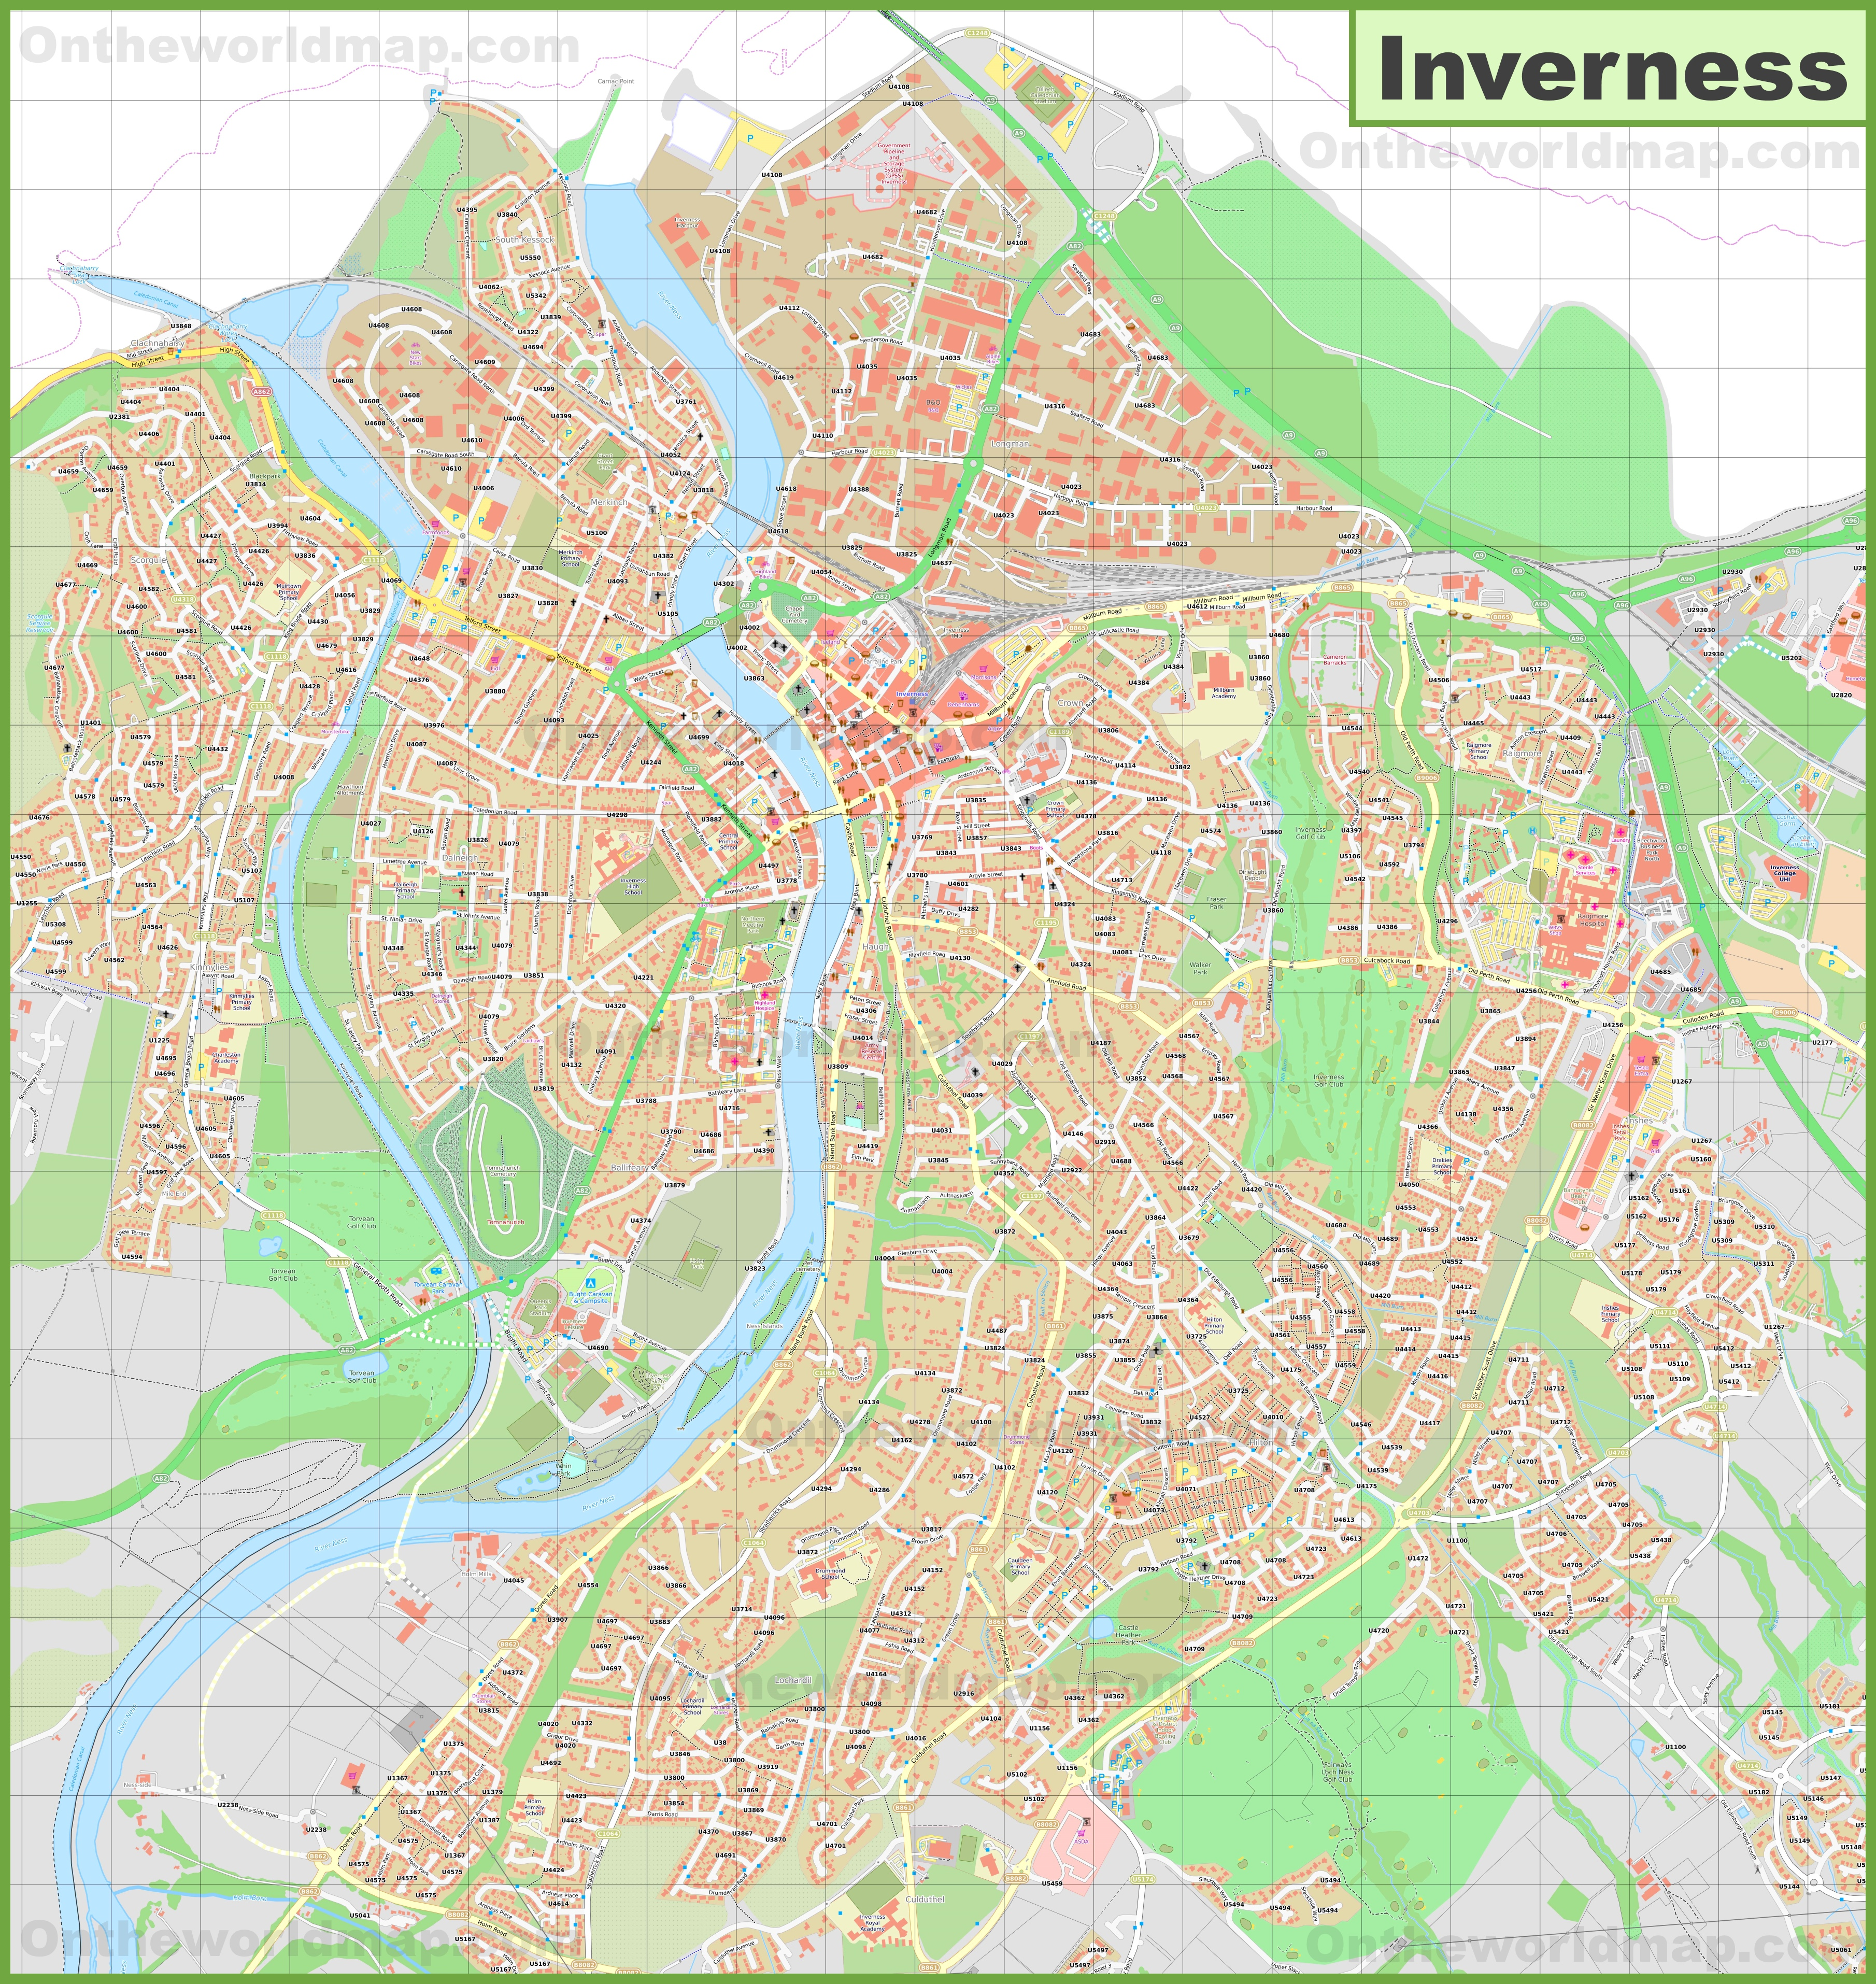 Map Of Inverness Detailed map of Inverness